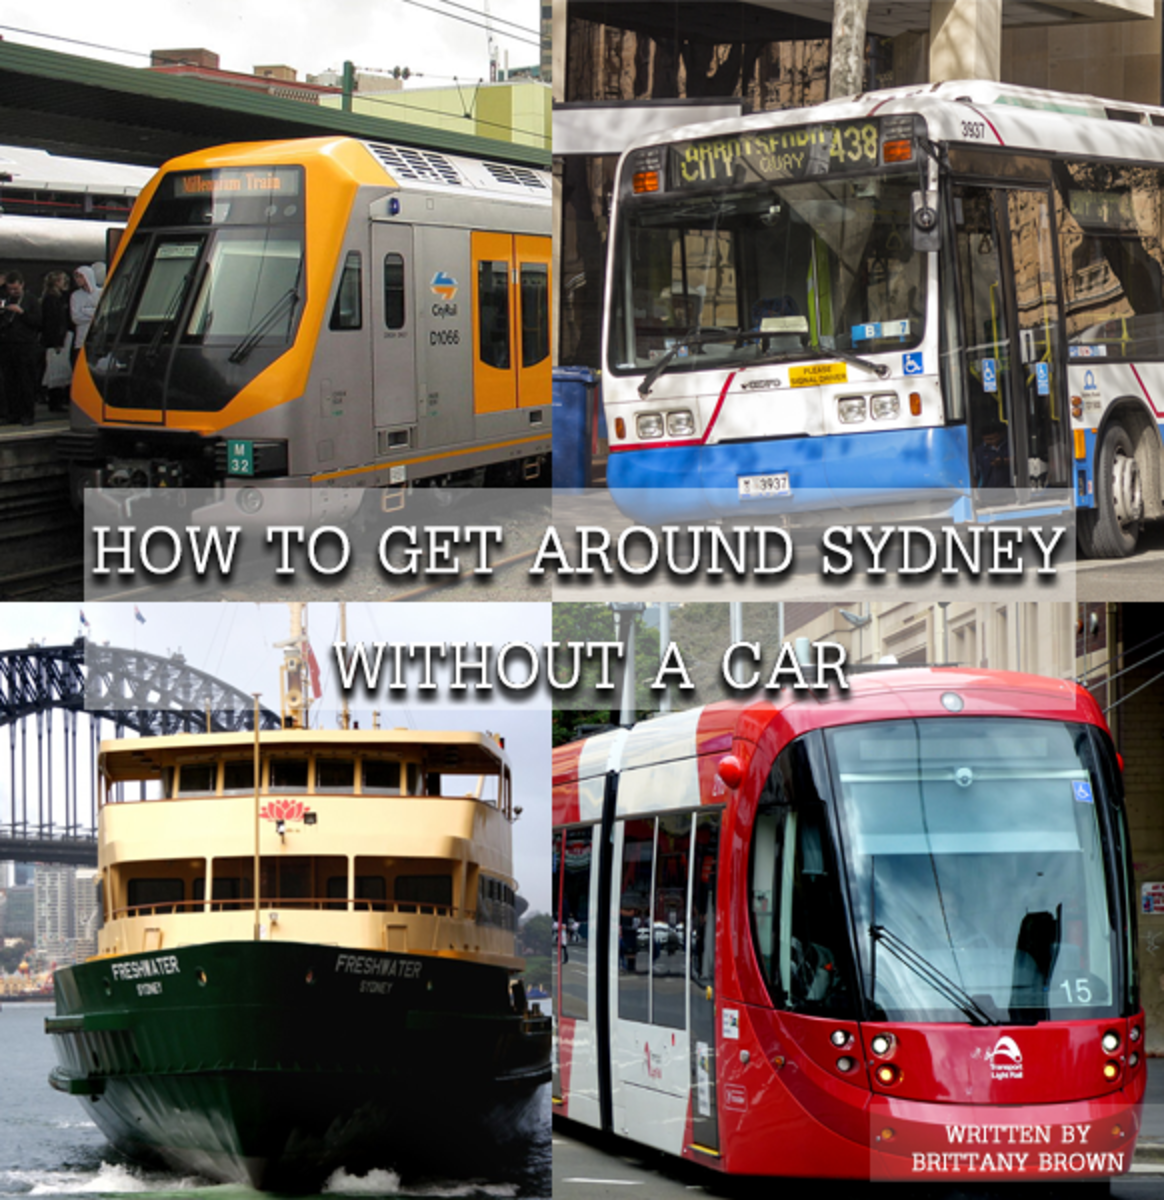 How to get around Sydney without a car, using train, bus, light rail, ferries, and Uber!